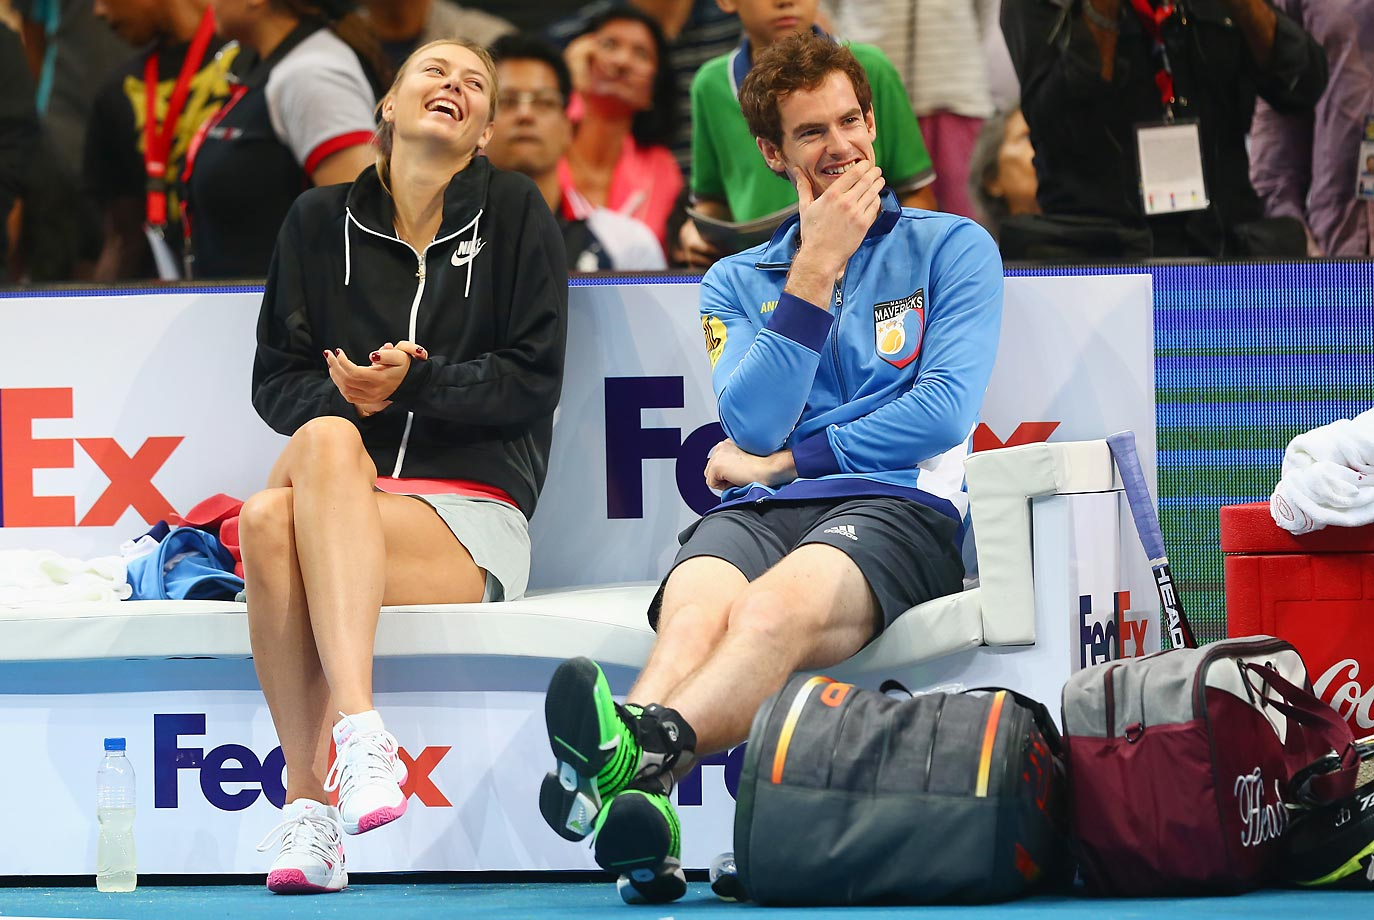 Maria Sharapova and Andy Murray share a joke at the Coca-Cola International Premier Tennis League at the Mall of Asia Arena.